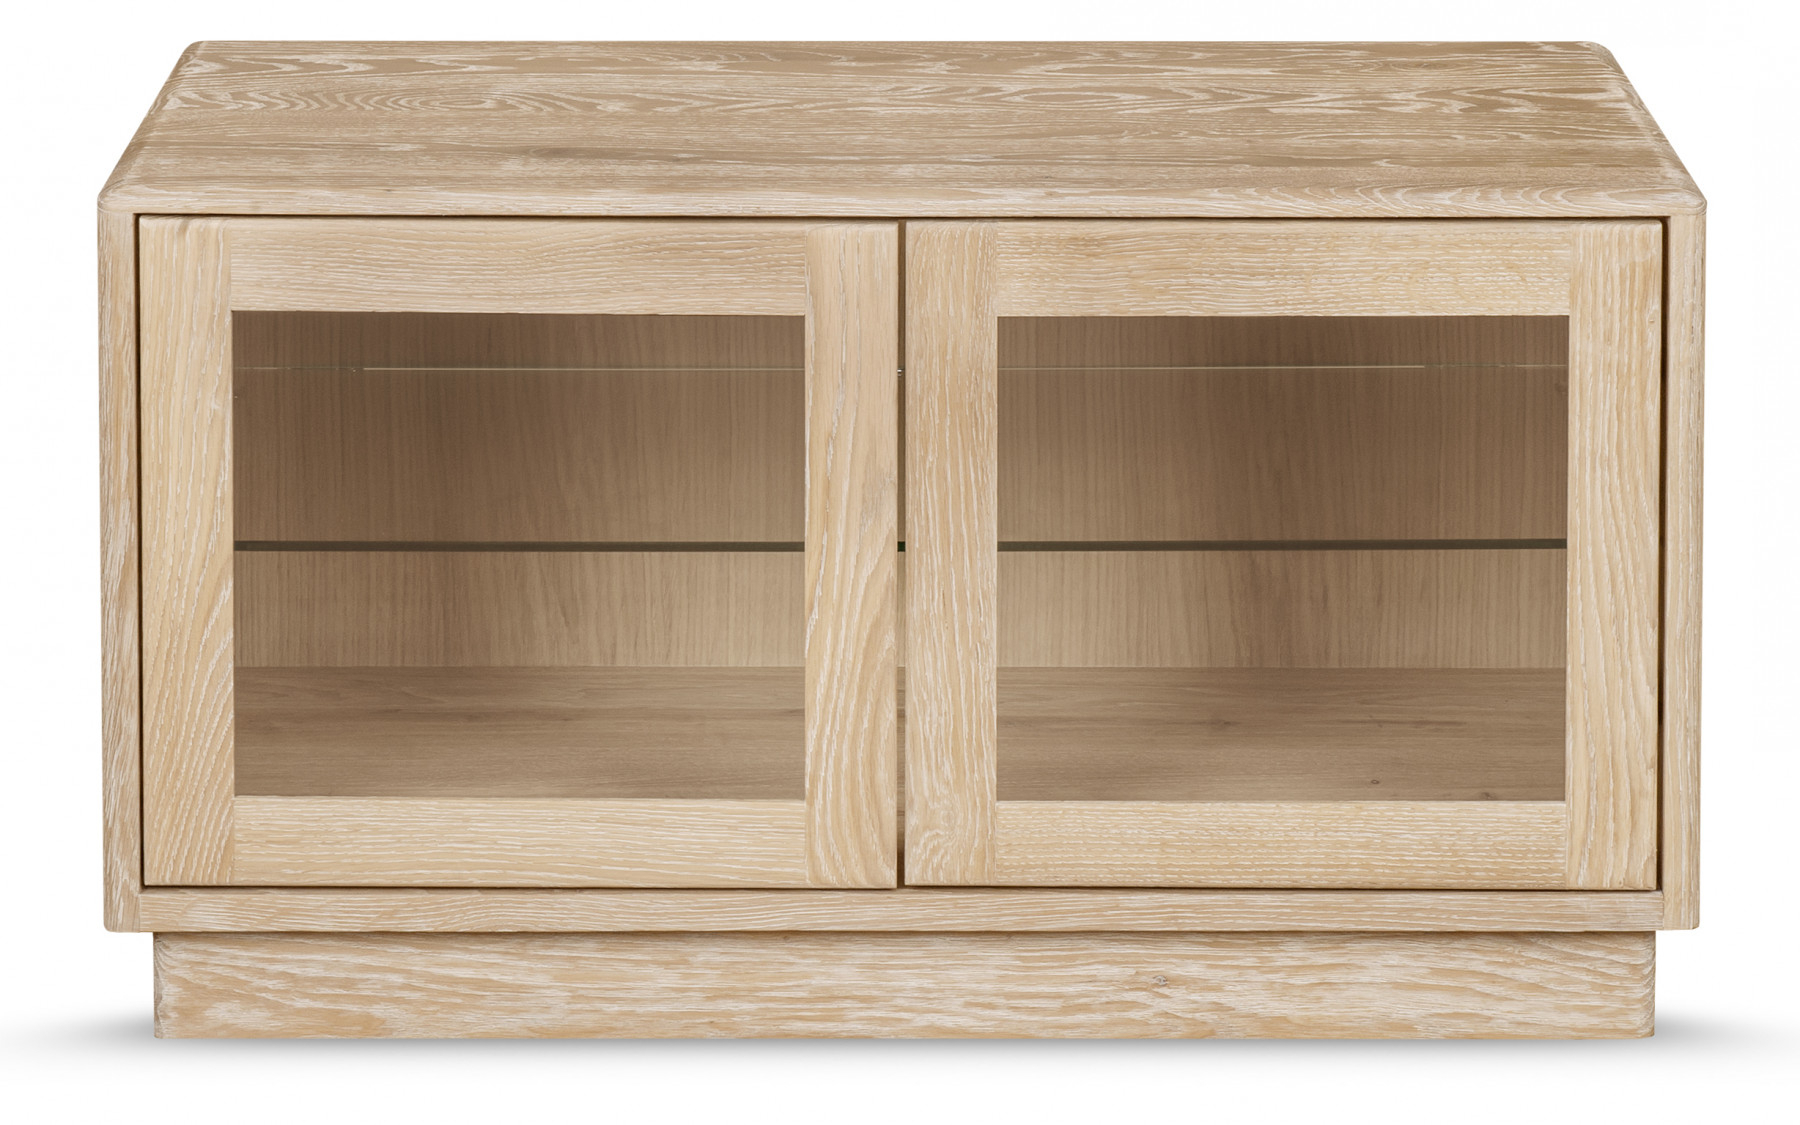 Solid Oak Within Most Popular Oak Tv Cabinets With Doors (Gallery 2 of 20)